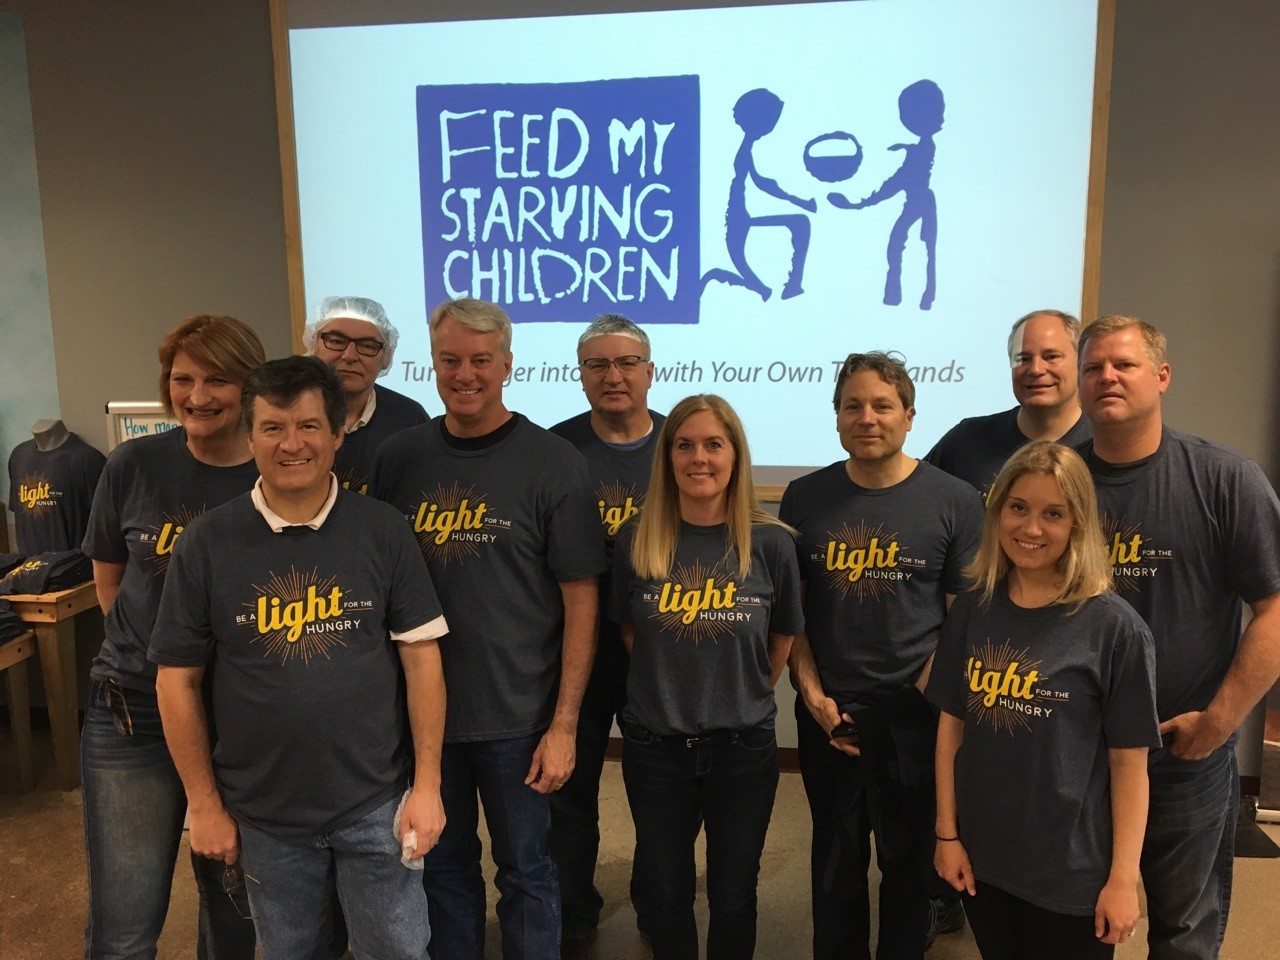 Mixing Business and Pleasure: Creation's Central Business Development Team Gives Back